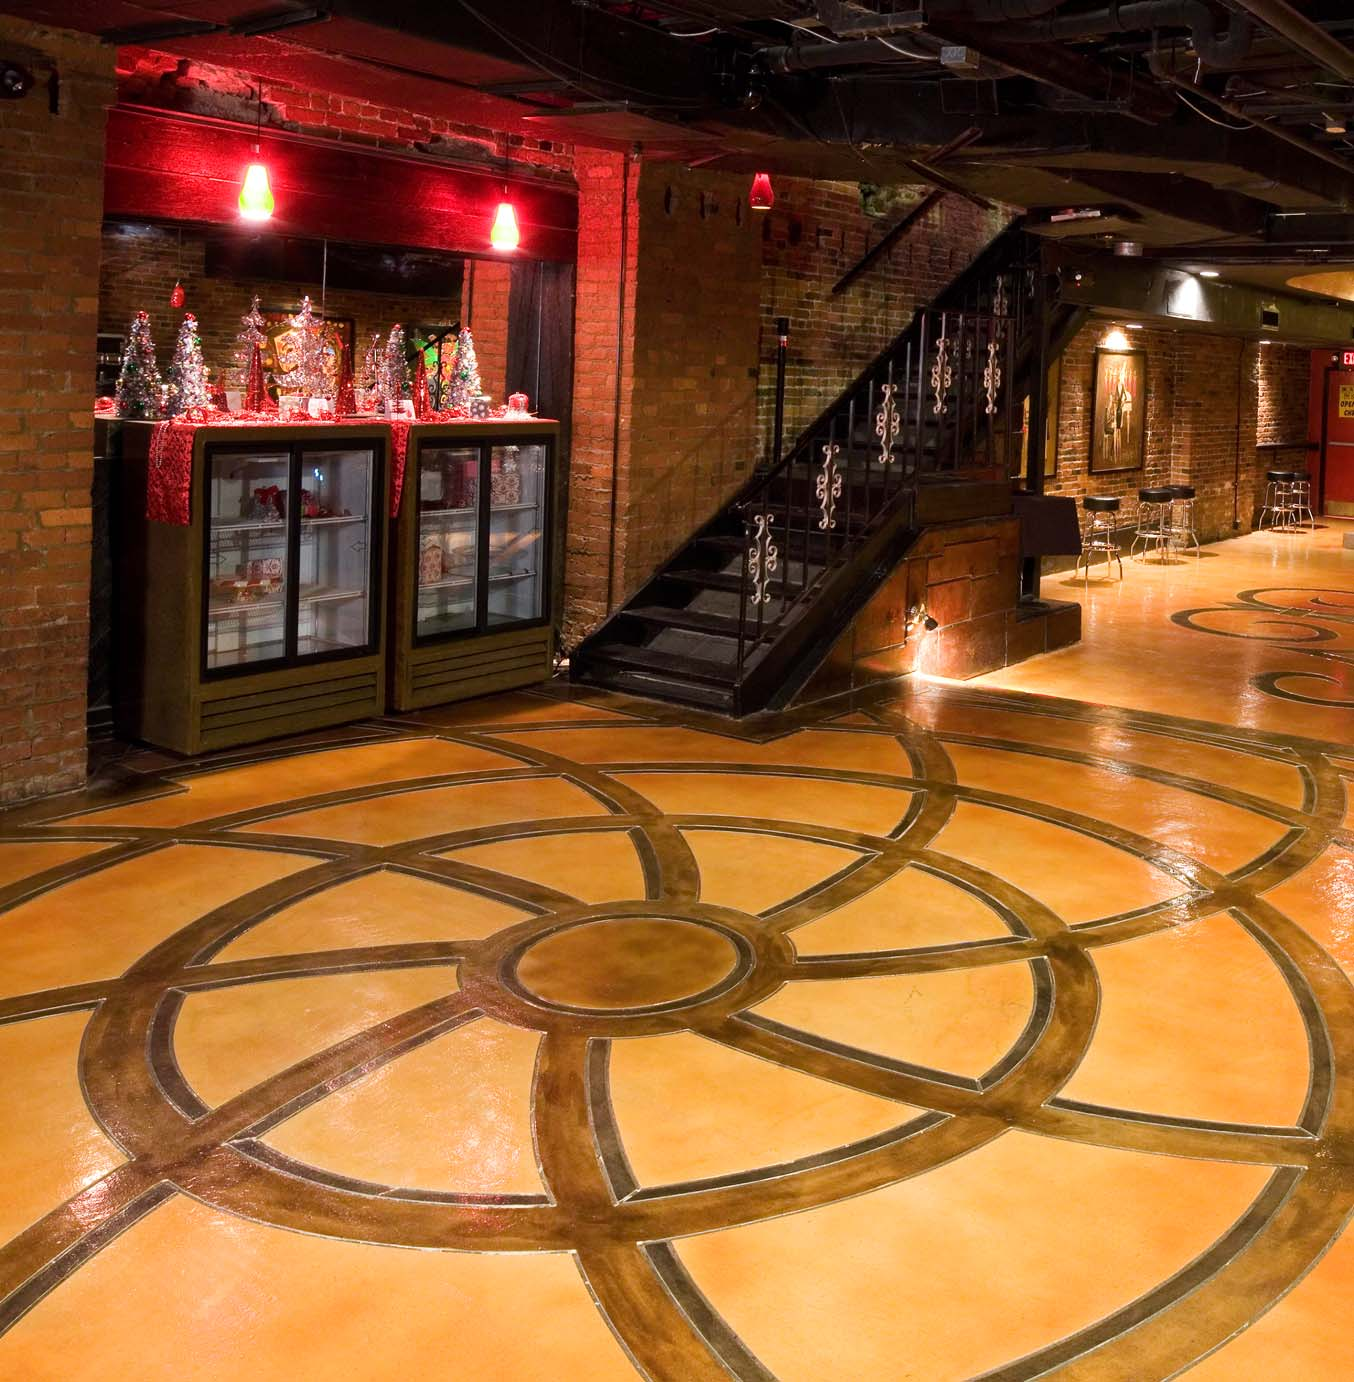 Spiral design on concrete overlay browns and light tan in Nashville.